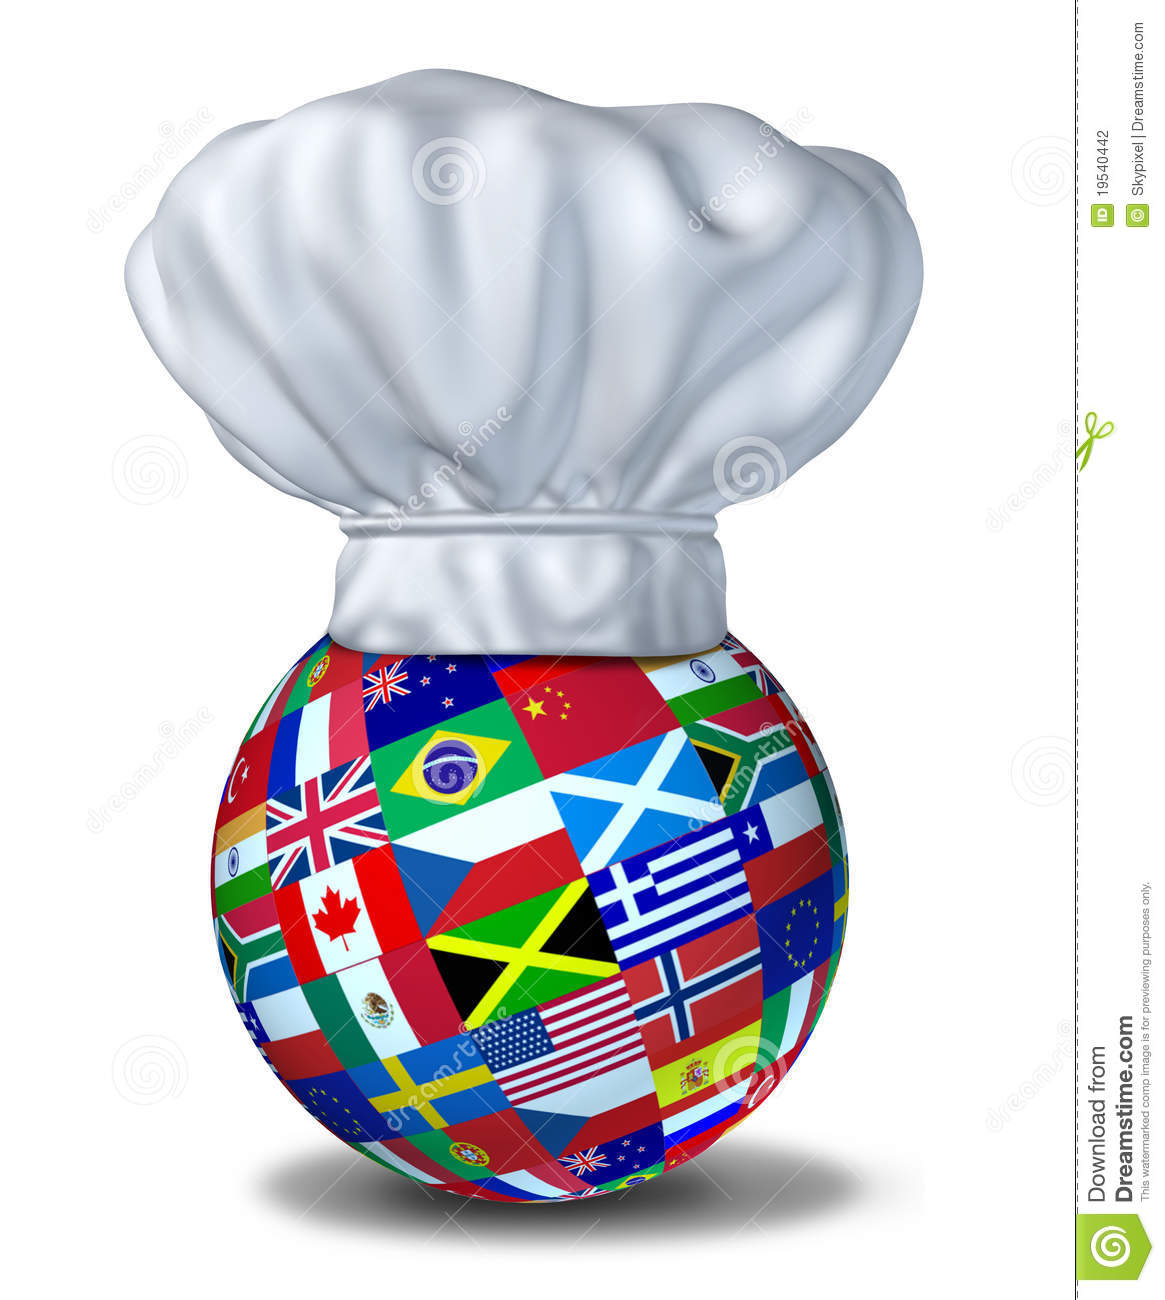 Restaurant Wereld Keuken International Cuisine Stock Photography Image 19540442